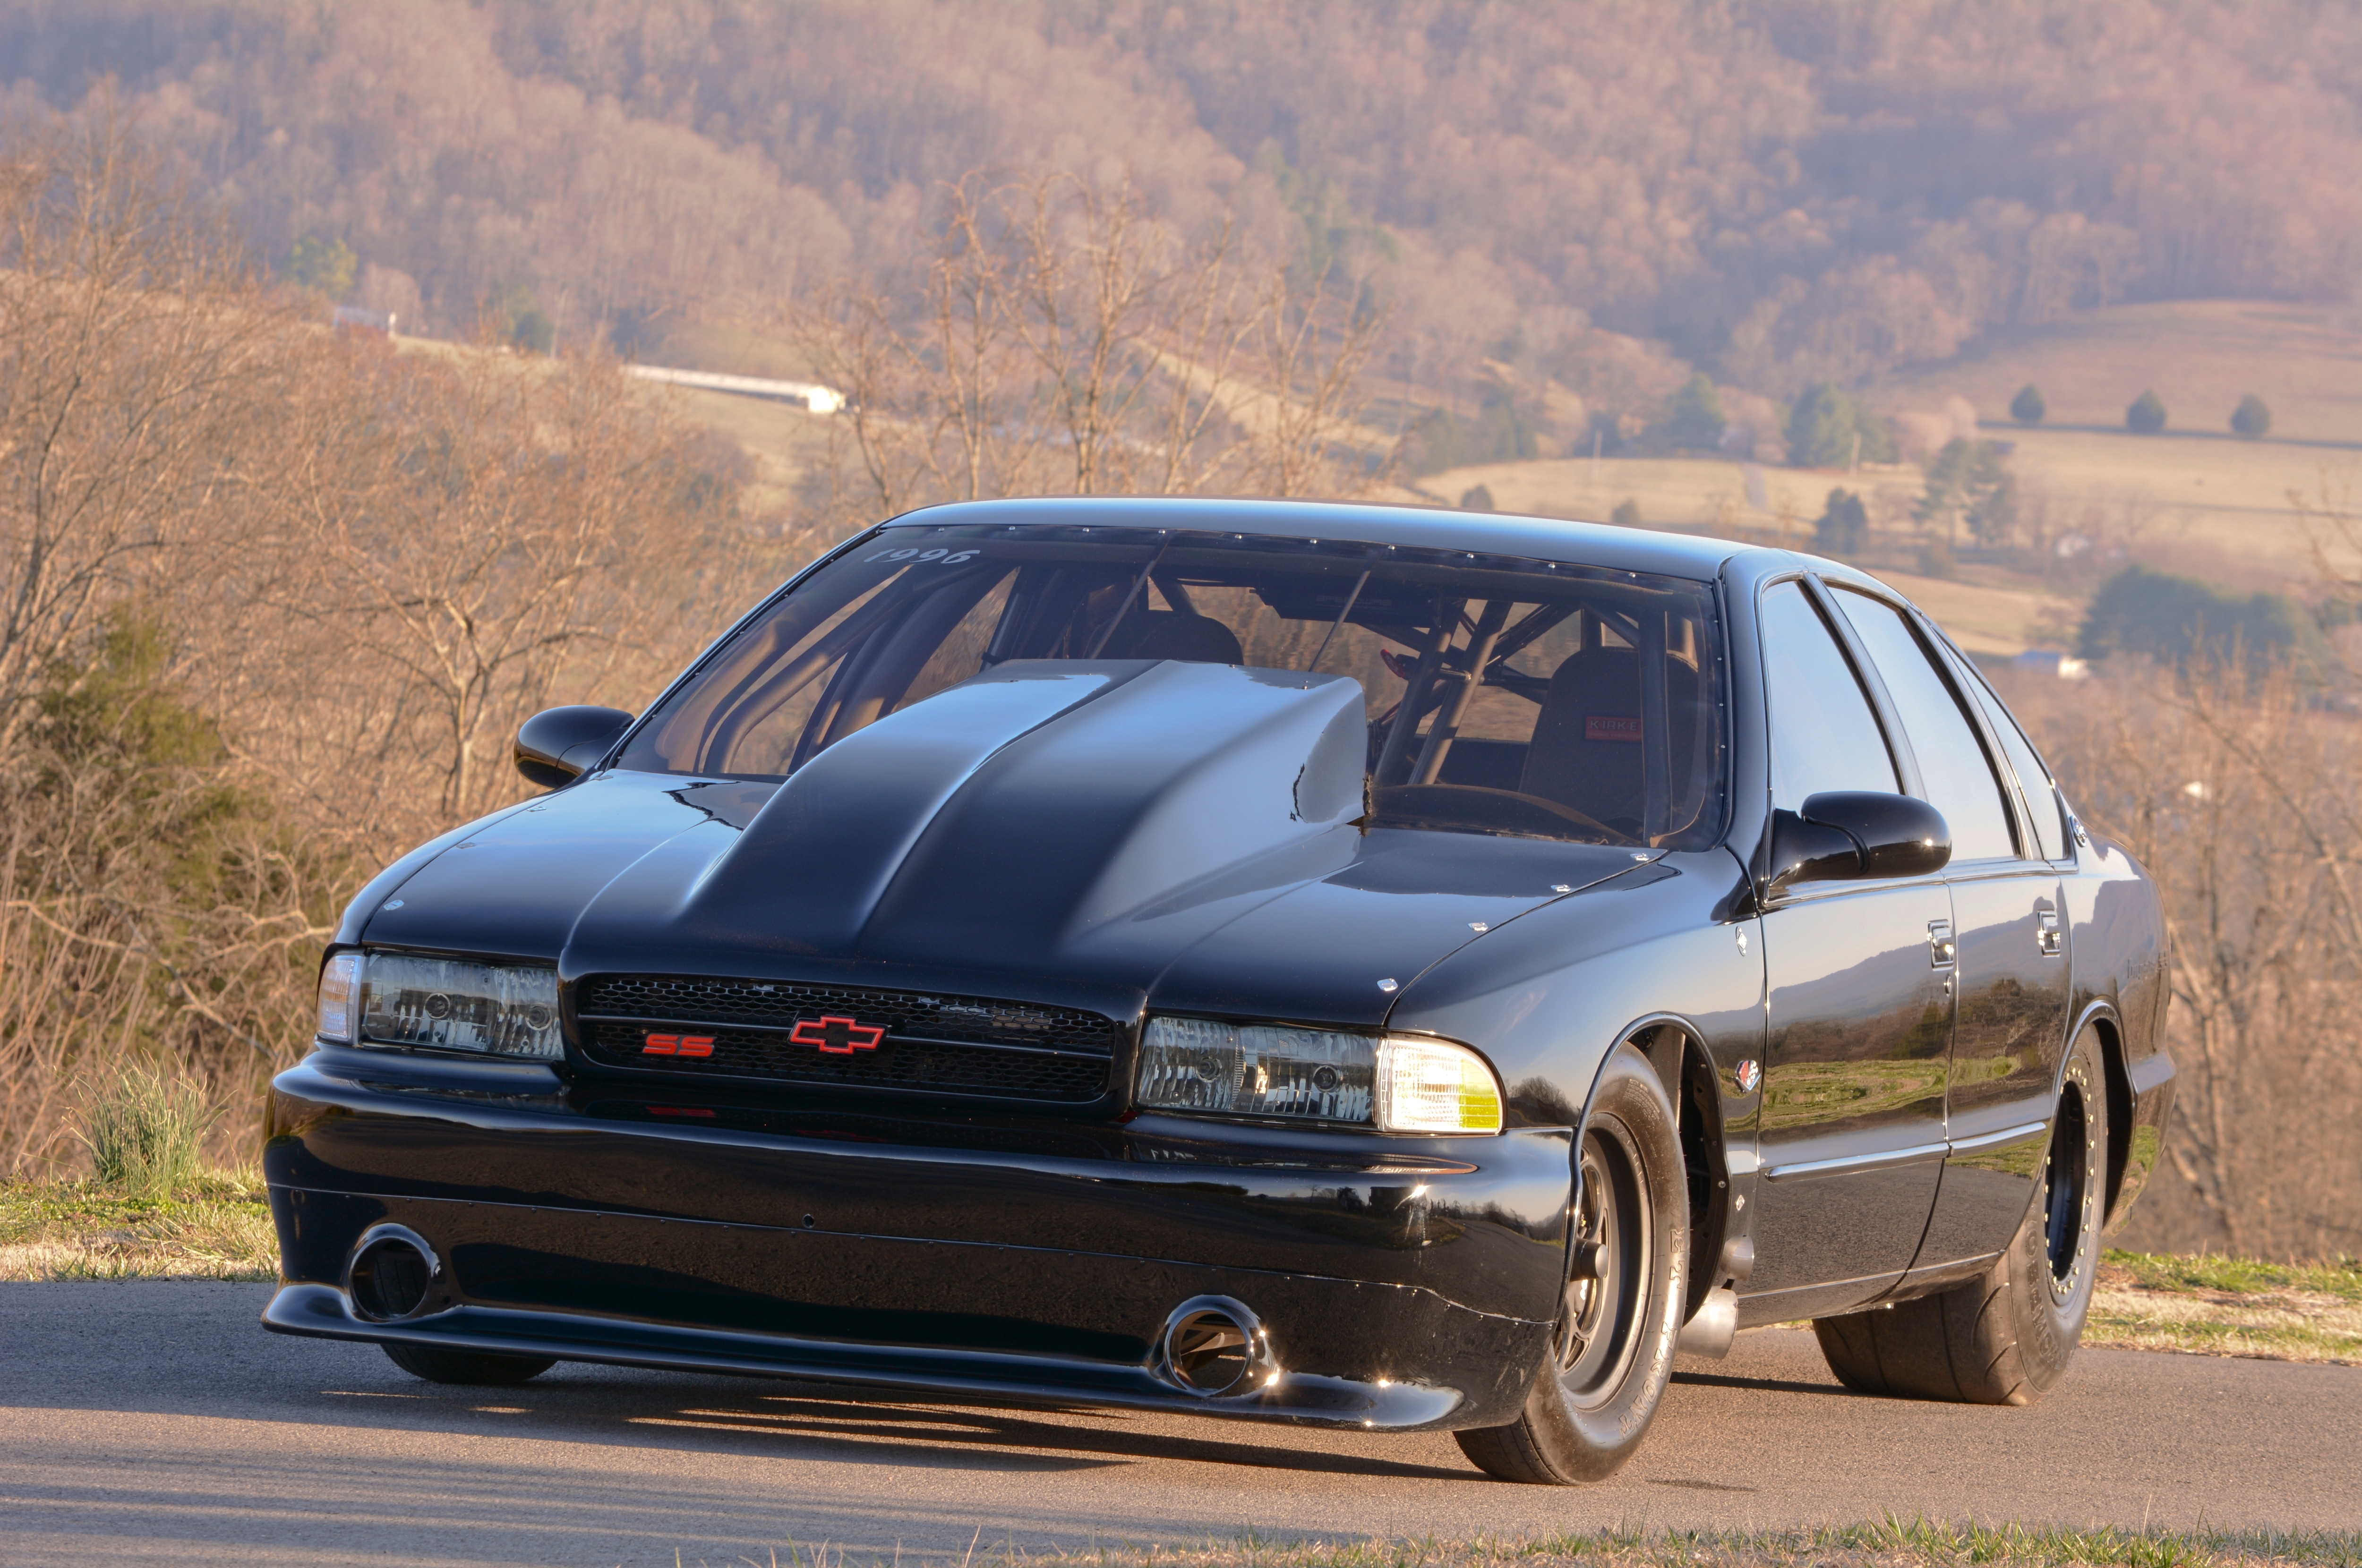 Rick Wetherbee's Outlaw Drag Radial 1996 Chevrolet Impala